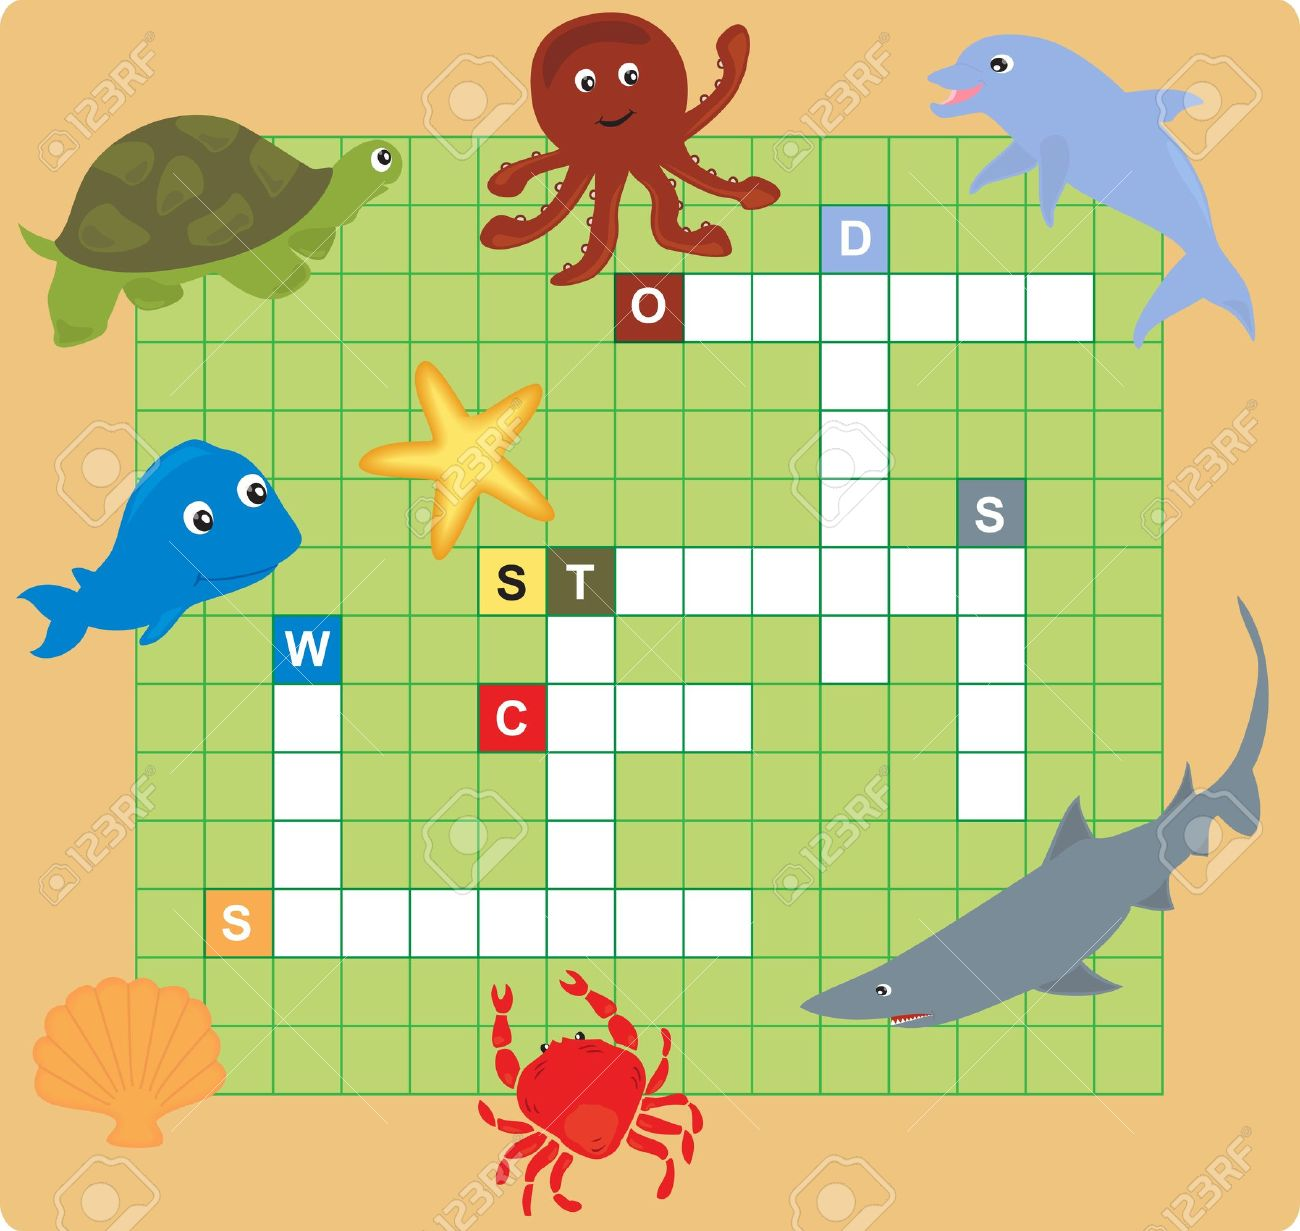 Puzzle Words Game For Children Stock Photos By Ankudi At 123 ...